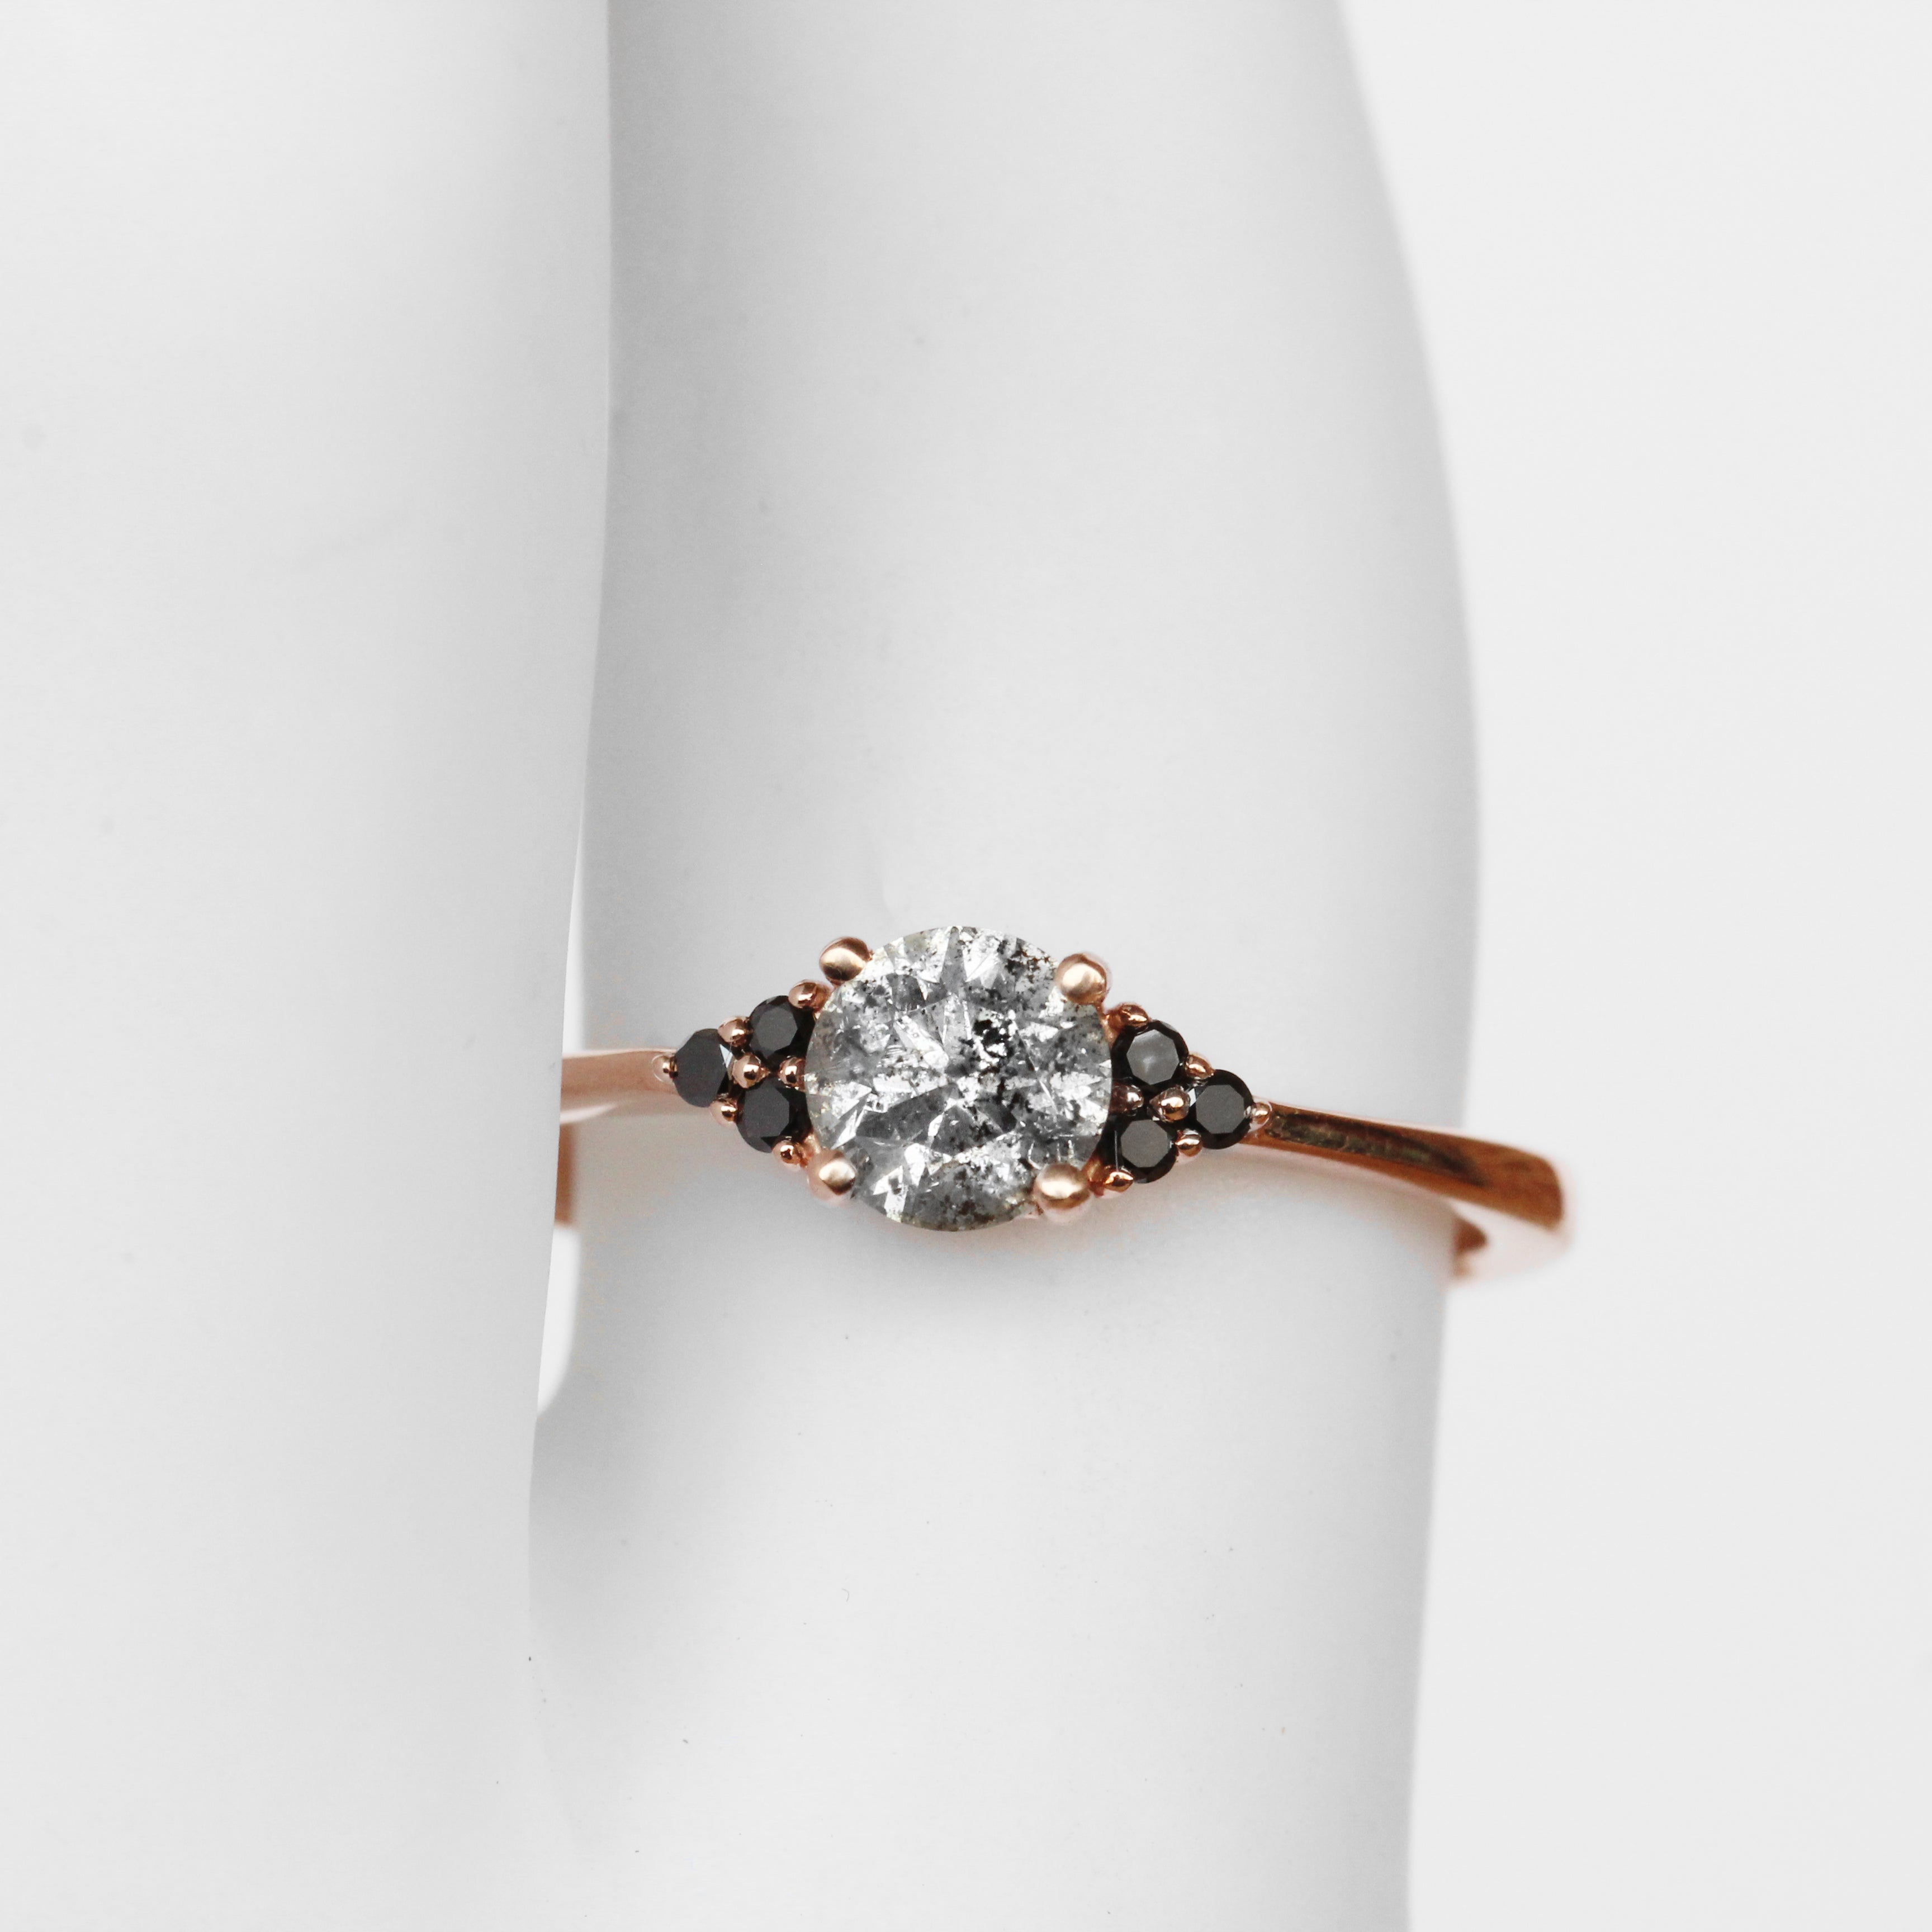 Imogene Ring with Celestial Diamond and Black Diamonds in 10k Rose Gold - Ready to size and ship